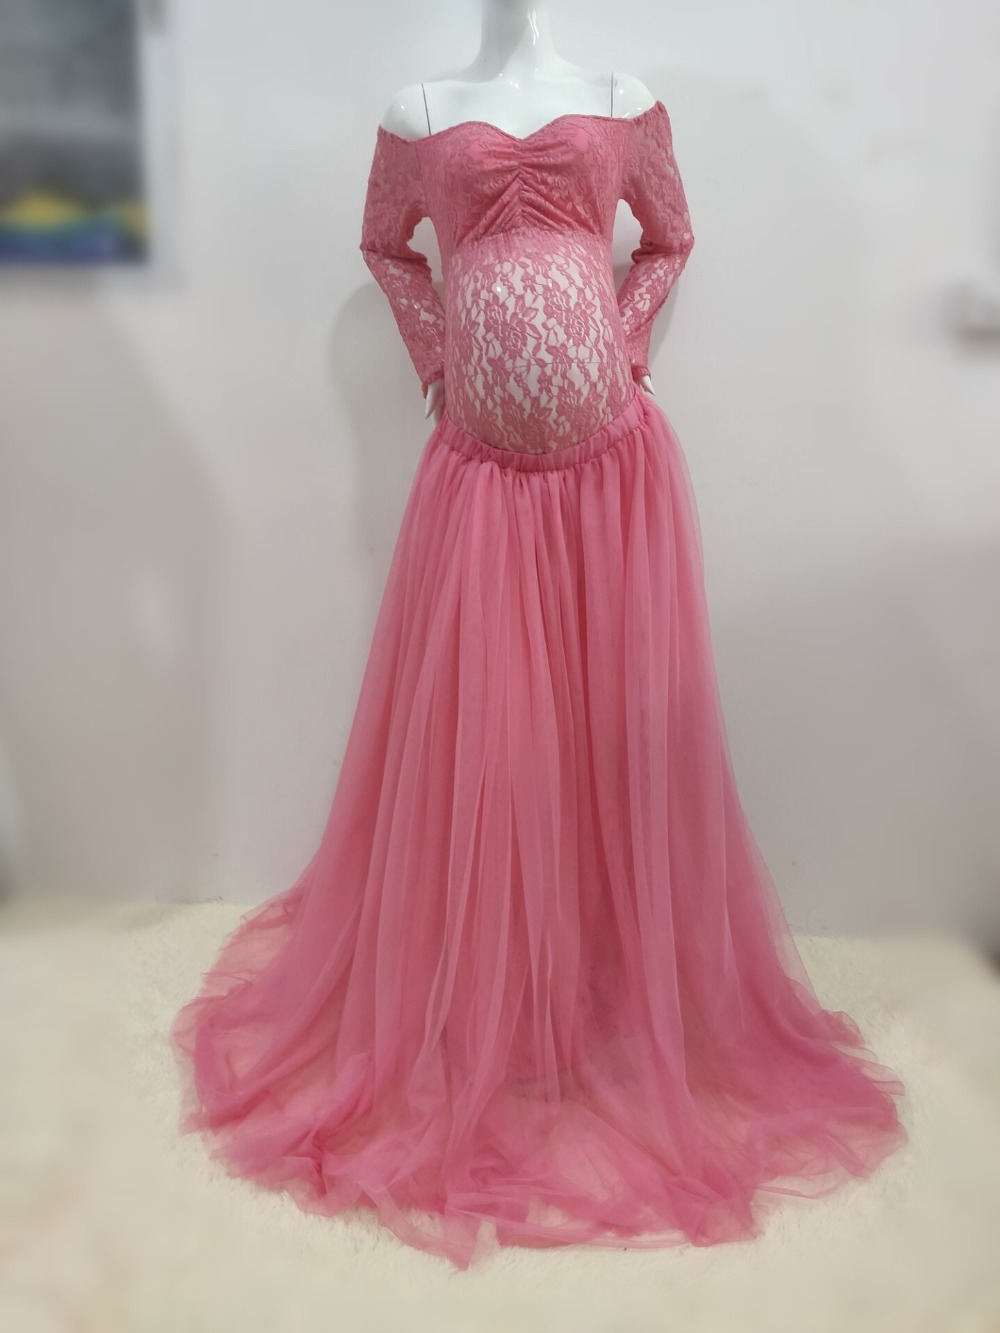 Sexy Lace Maternity Photography Props Long Dress Baby Shower Fancy Pregnancy Dress Photo Shoot For Pregnant Women Mesh Maxi Gown (7)